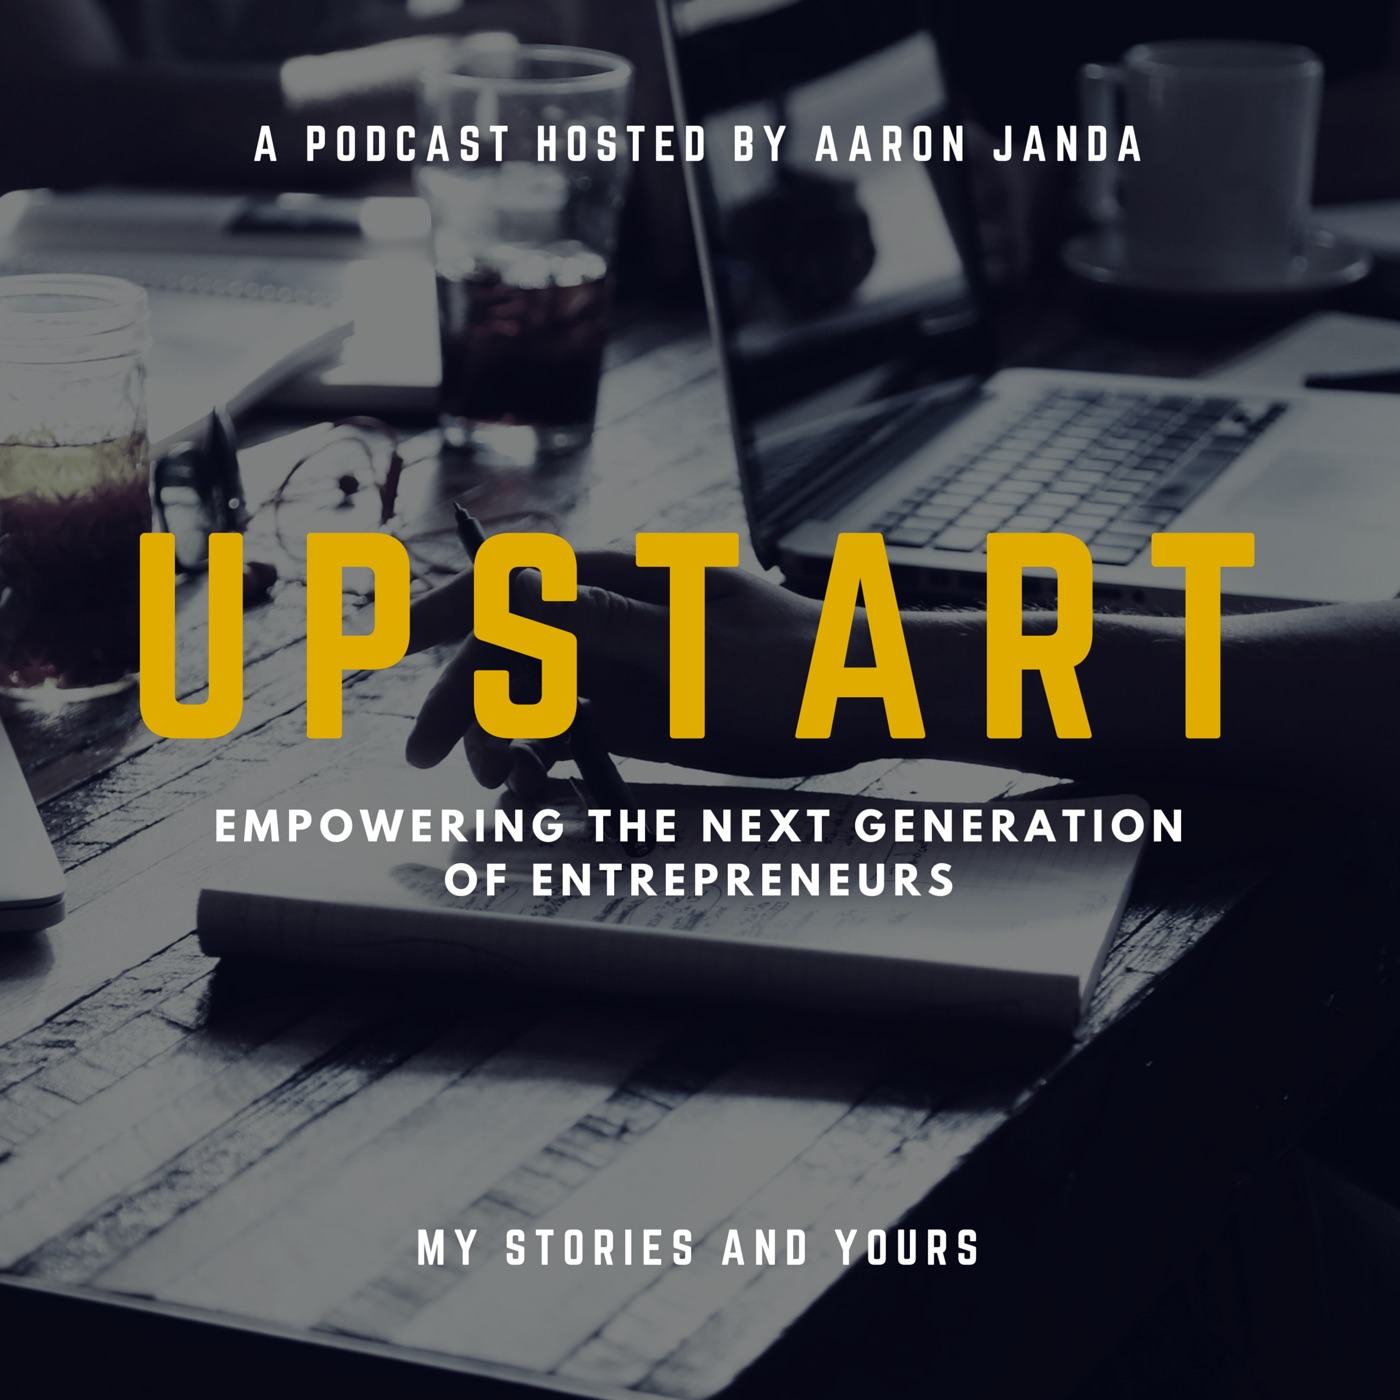 Upstart Podcast